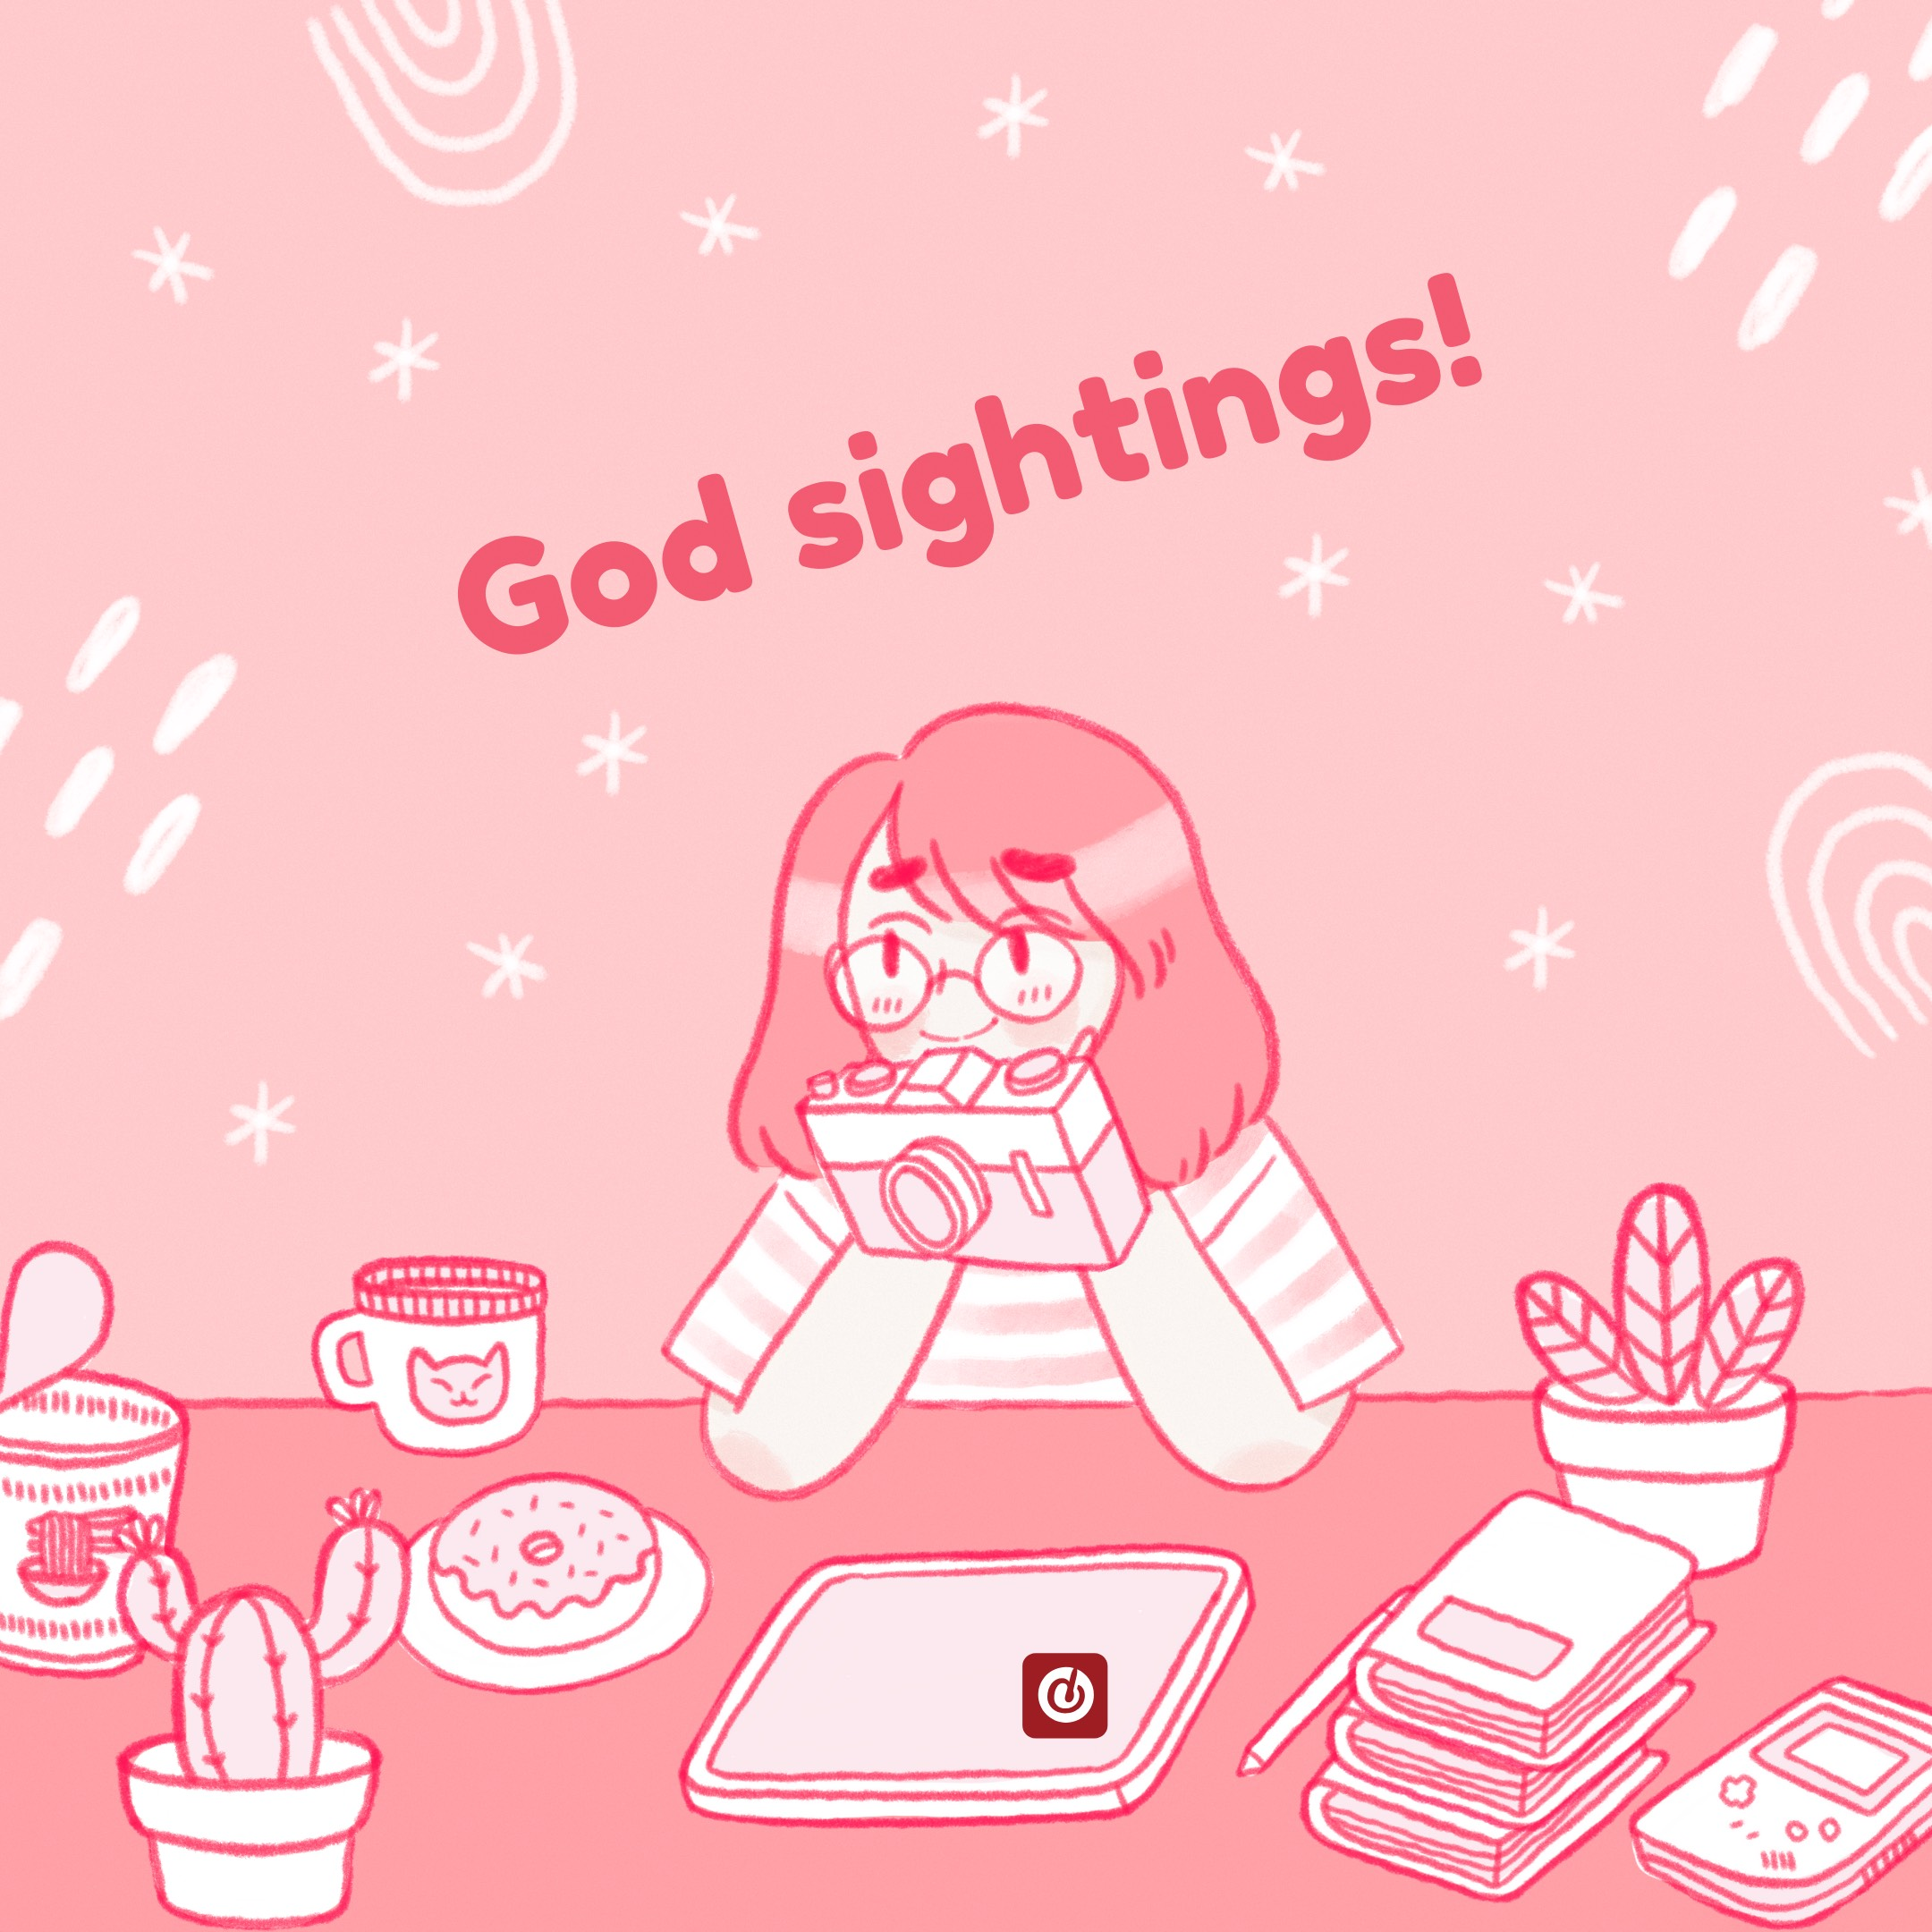 God sightings